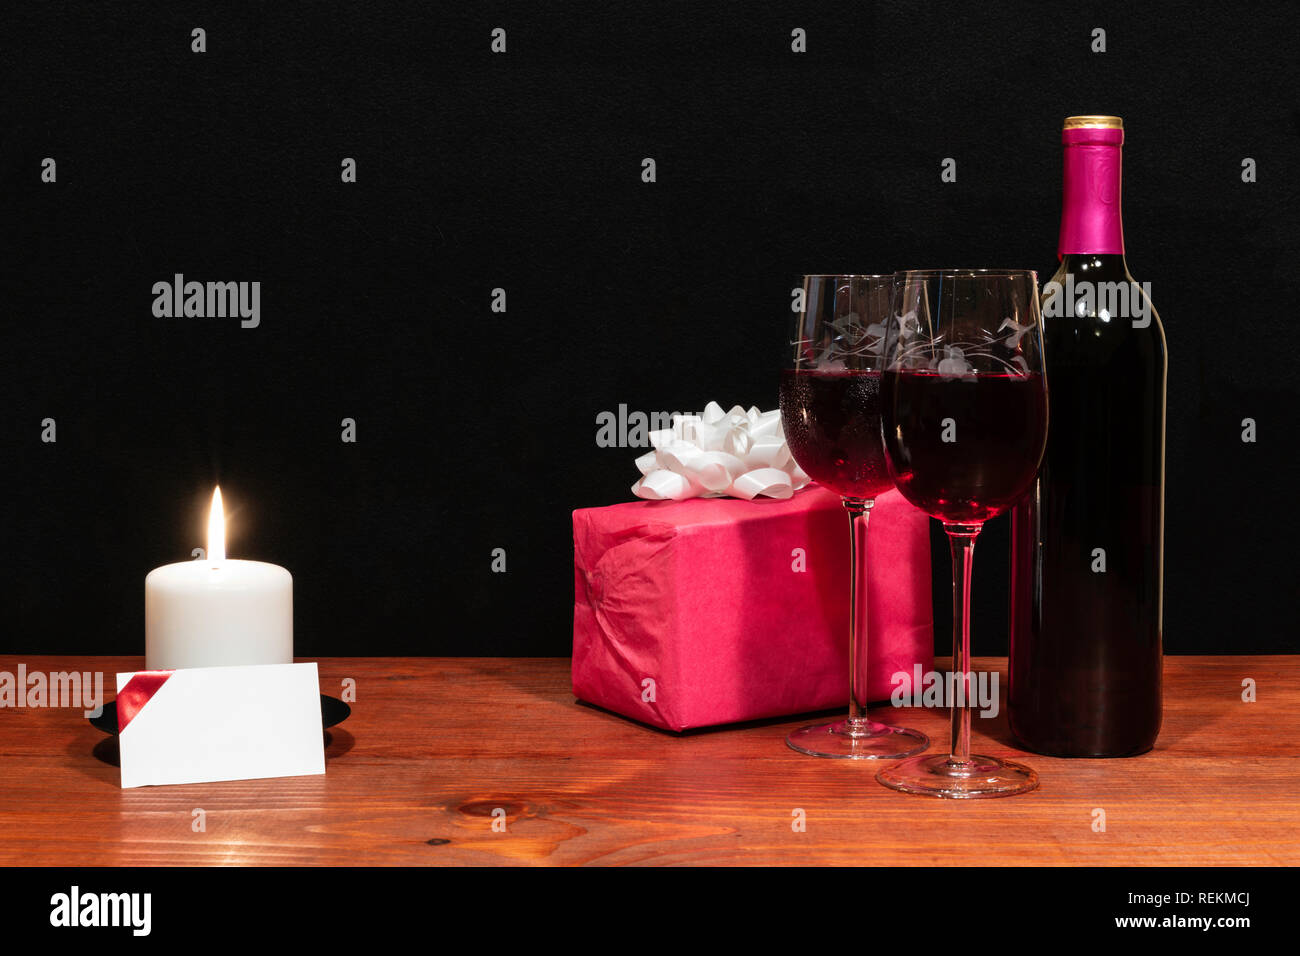 Beautiful etched wine glasses and bottle of red wine, white candle, wrapped present with bow on wooden table with name tag on dark background. Stock Photo